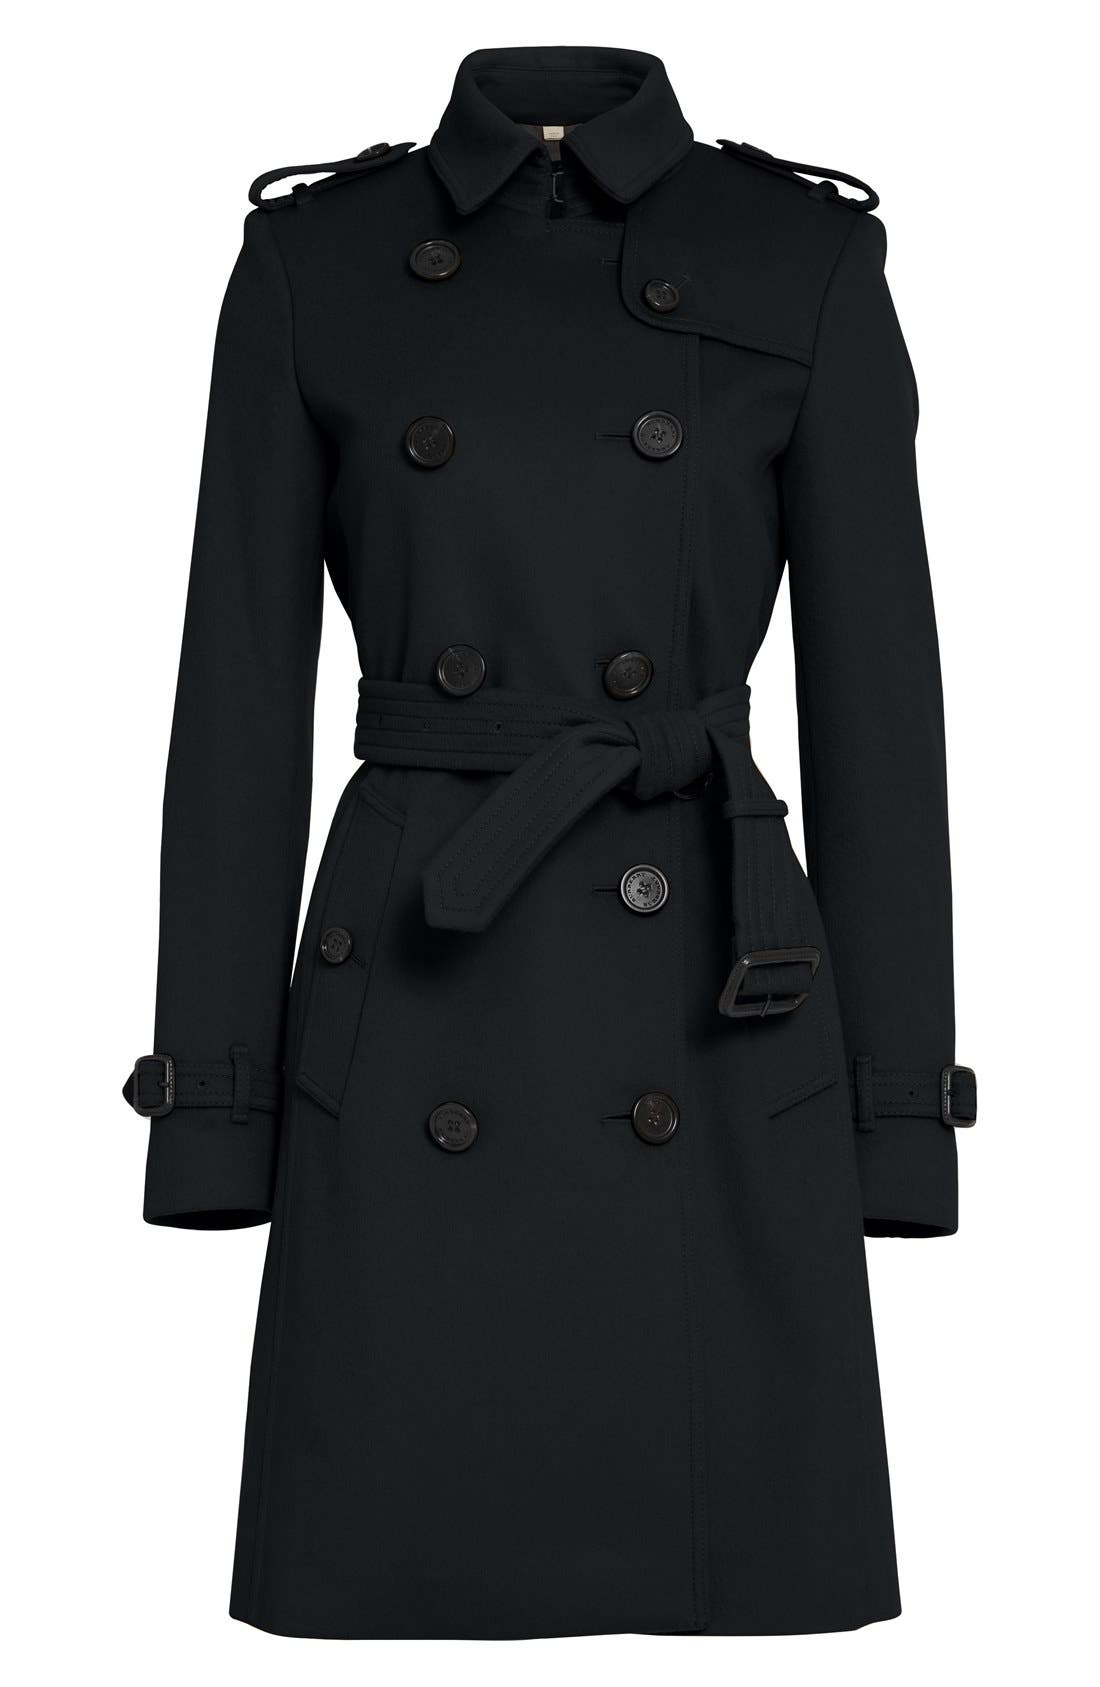 Kensington Double Breasted Wool & Cashmere Trench Coat,                             Alternate thumbnail 4, color,                             Black